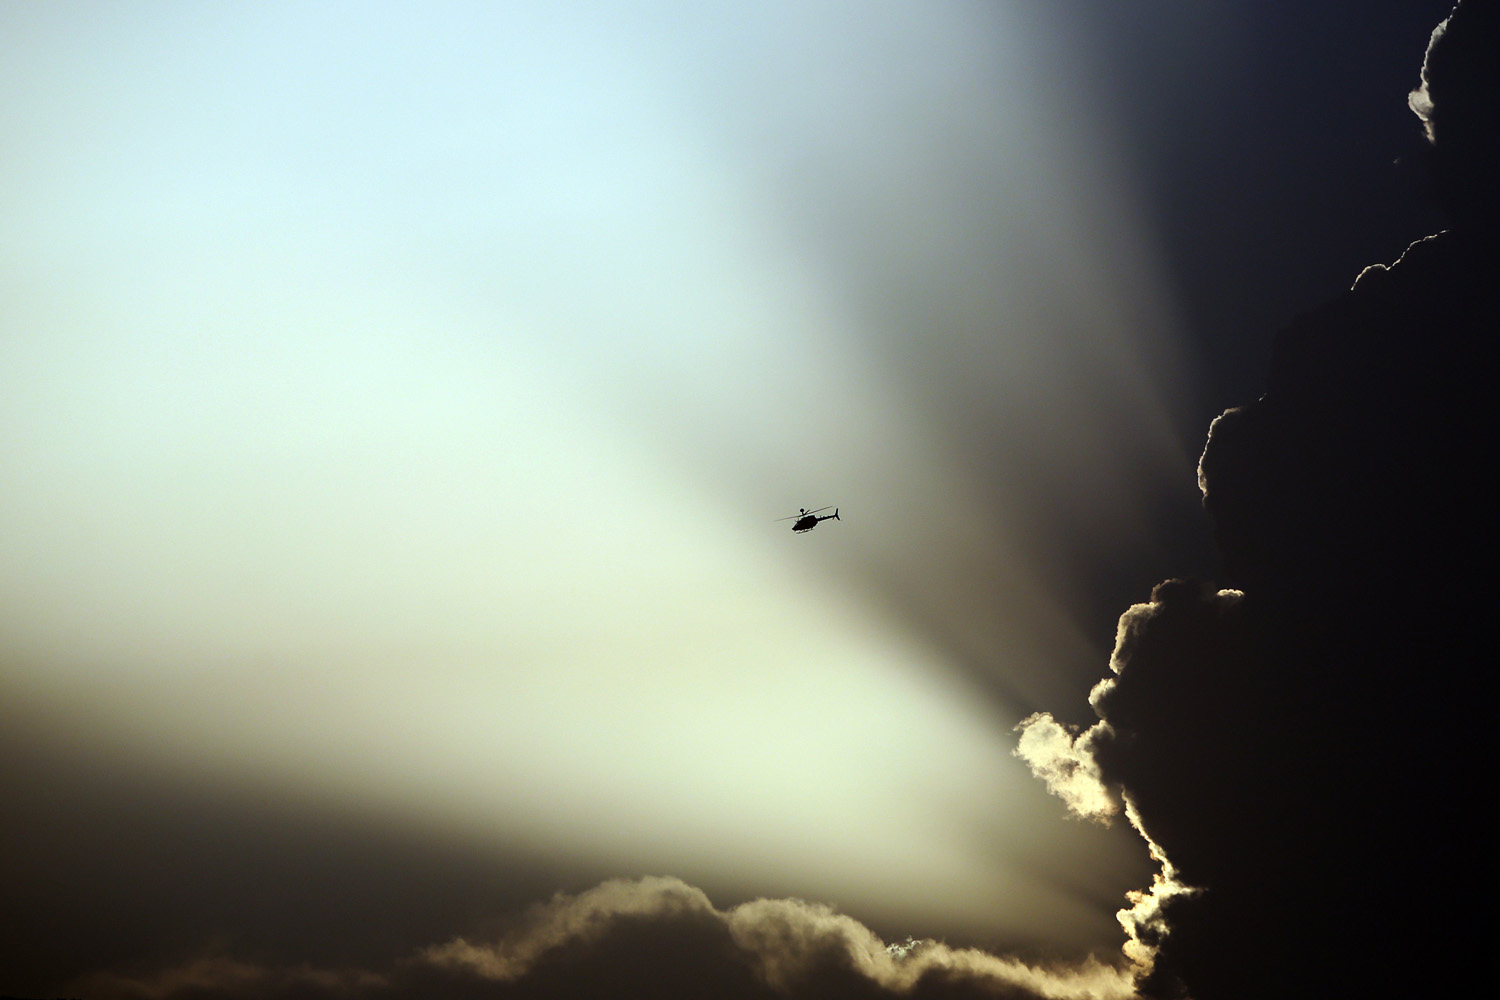 Jul. 17, 2014. A U.S. helicopter flies during clashes between Taliban fighters and Afghan government forces in Kabul, Afghanistan.